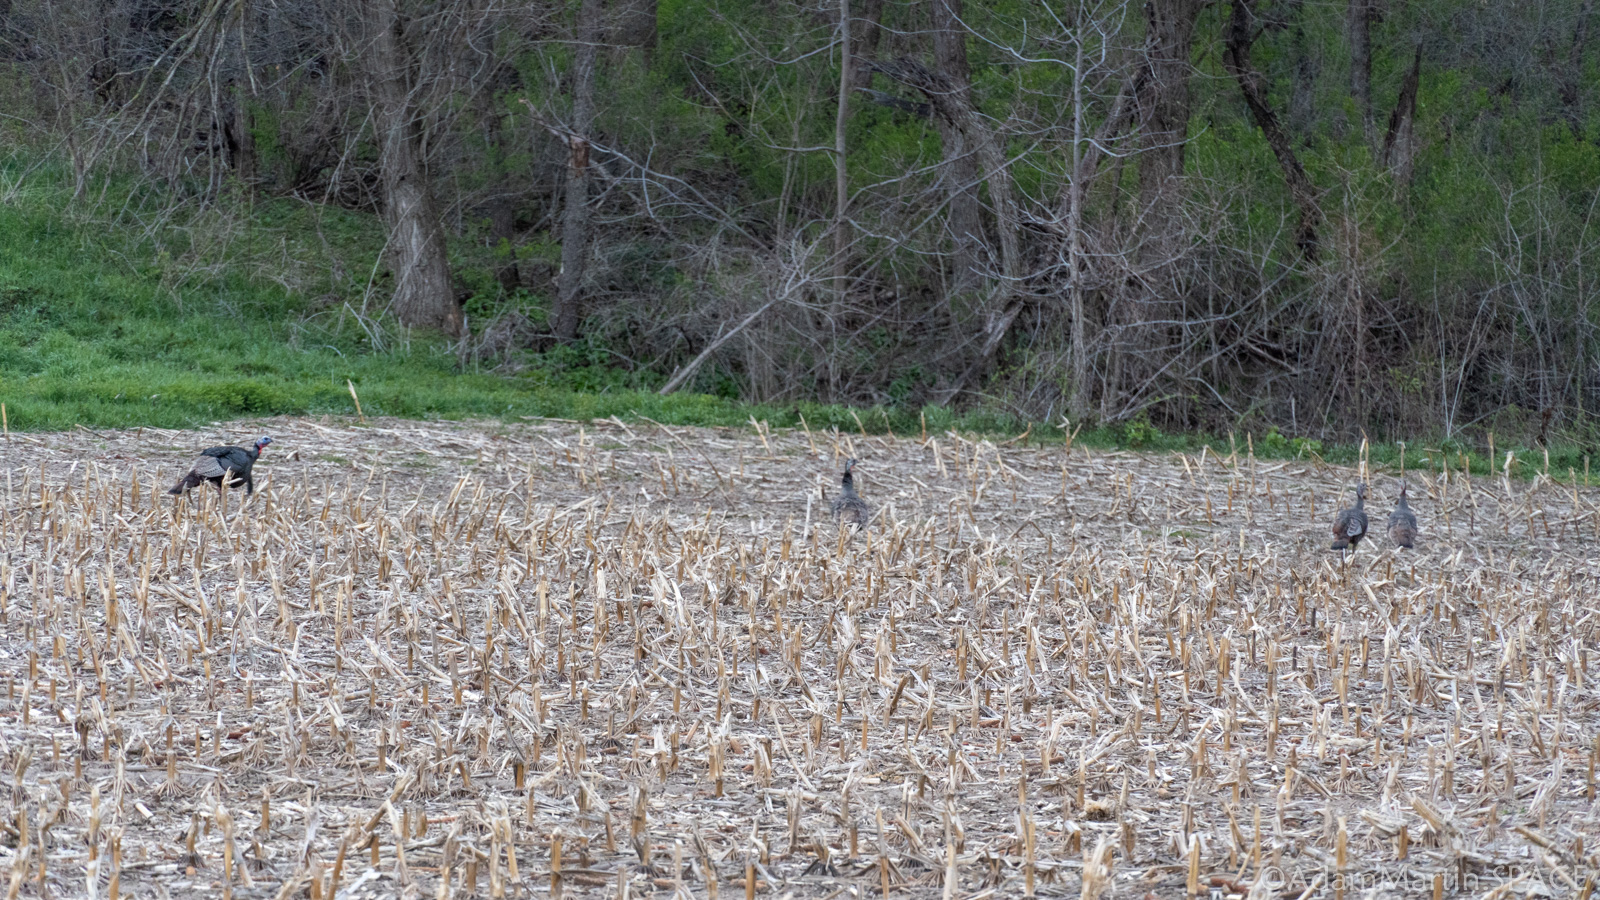 Turkeys on a private farm area while road scouting